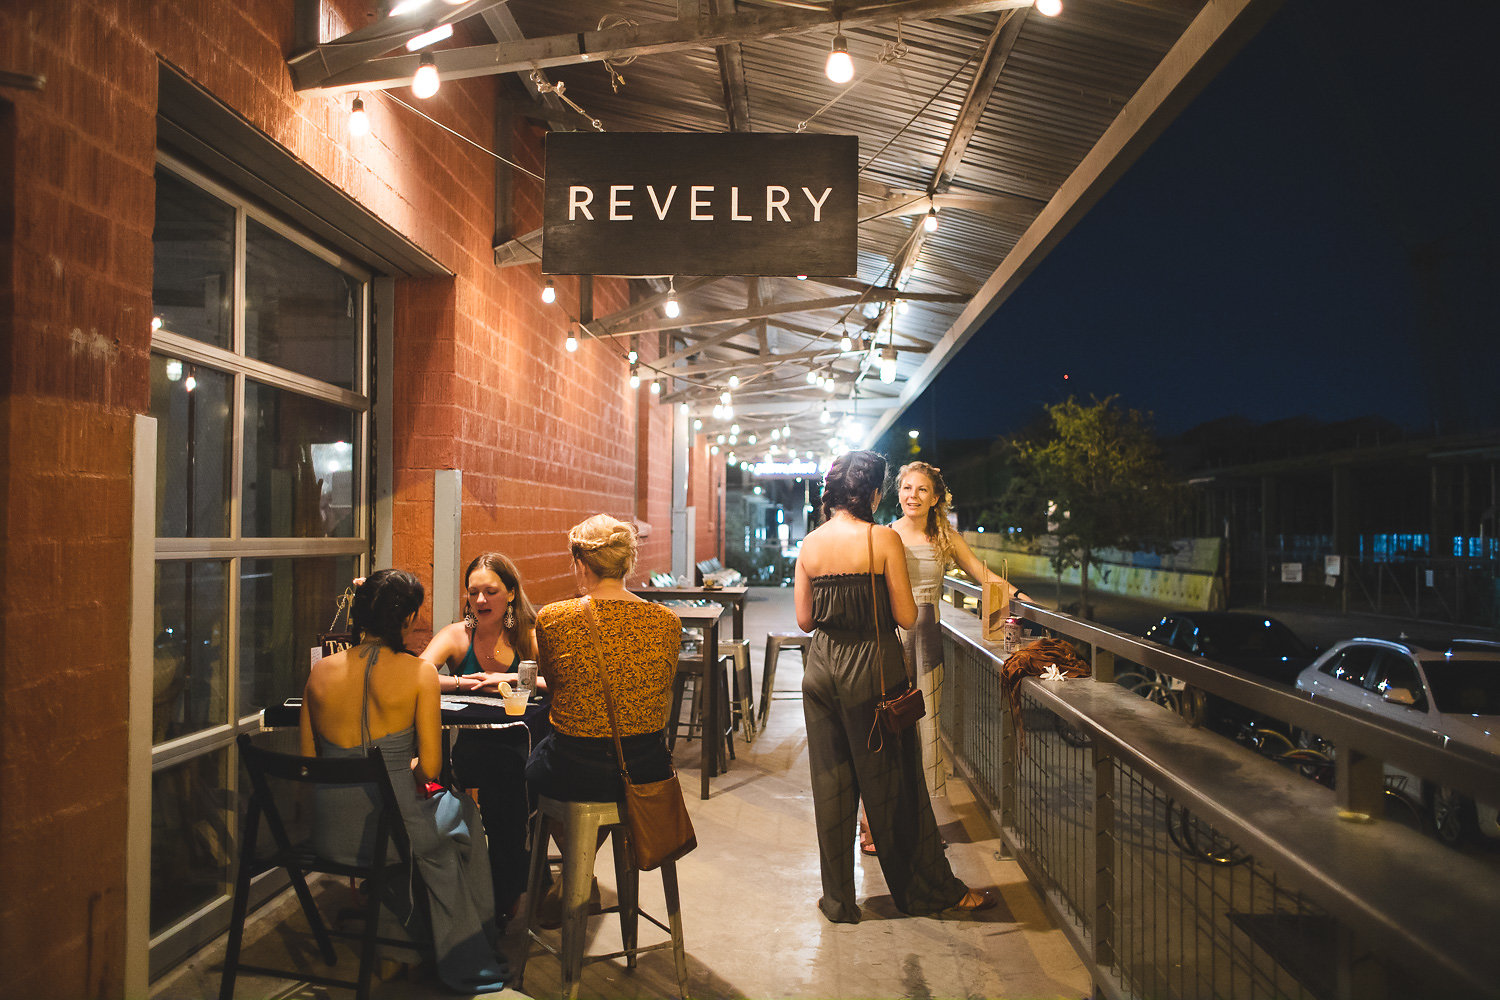 revelry-endless-summer-2018-223.jpg